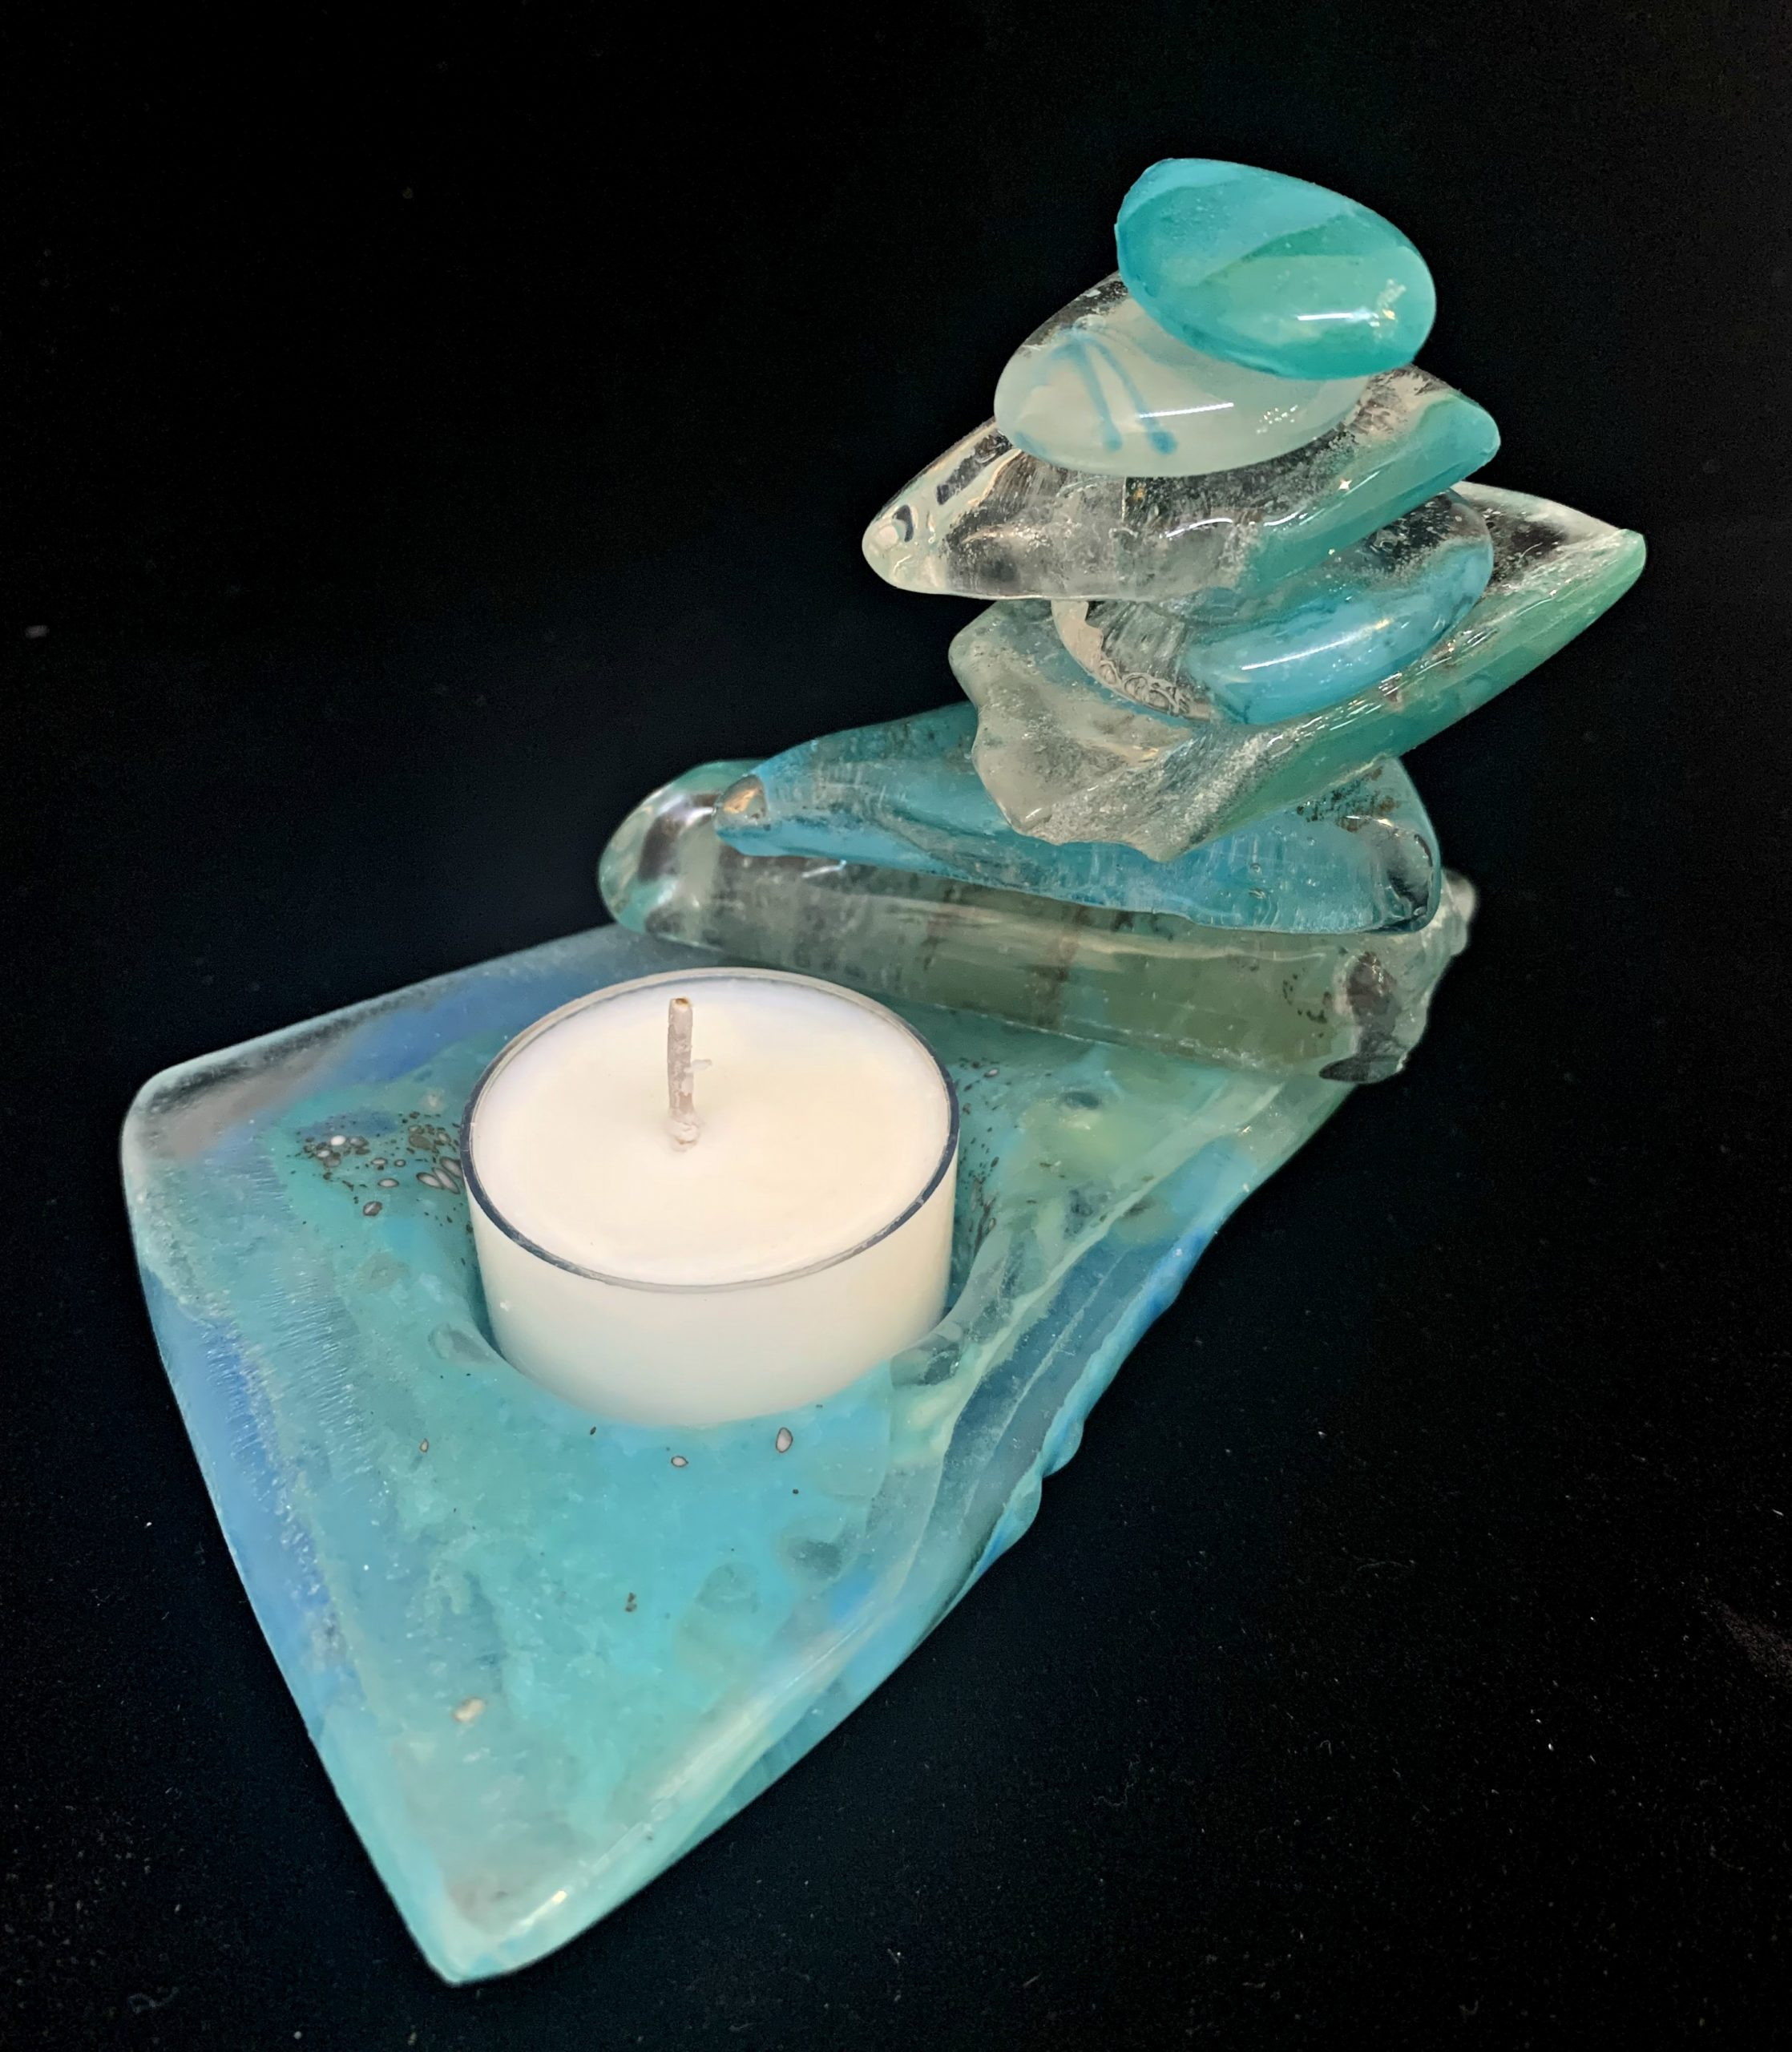 Cast Glass Rocky Mountain Cairn 33 tea light holder by Heather Cuell | Effusion Art Gallery + Cast Glass Studio, Invermere BC